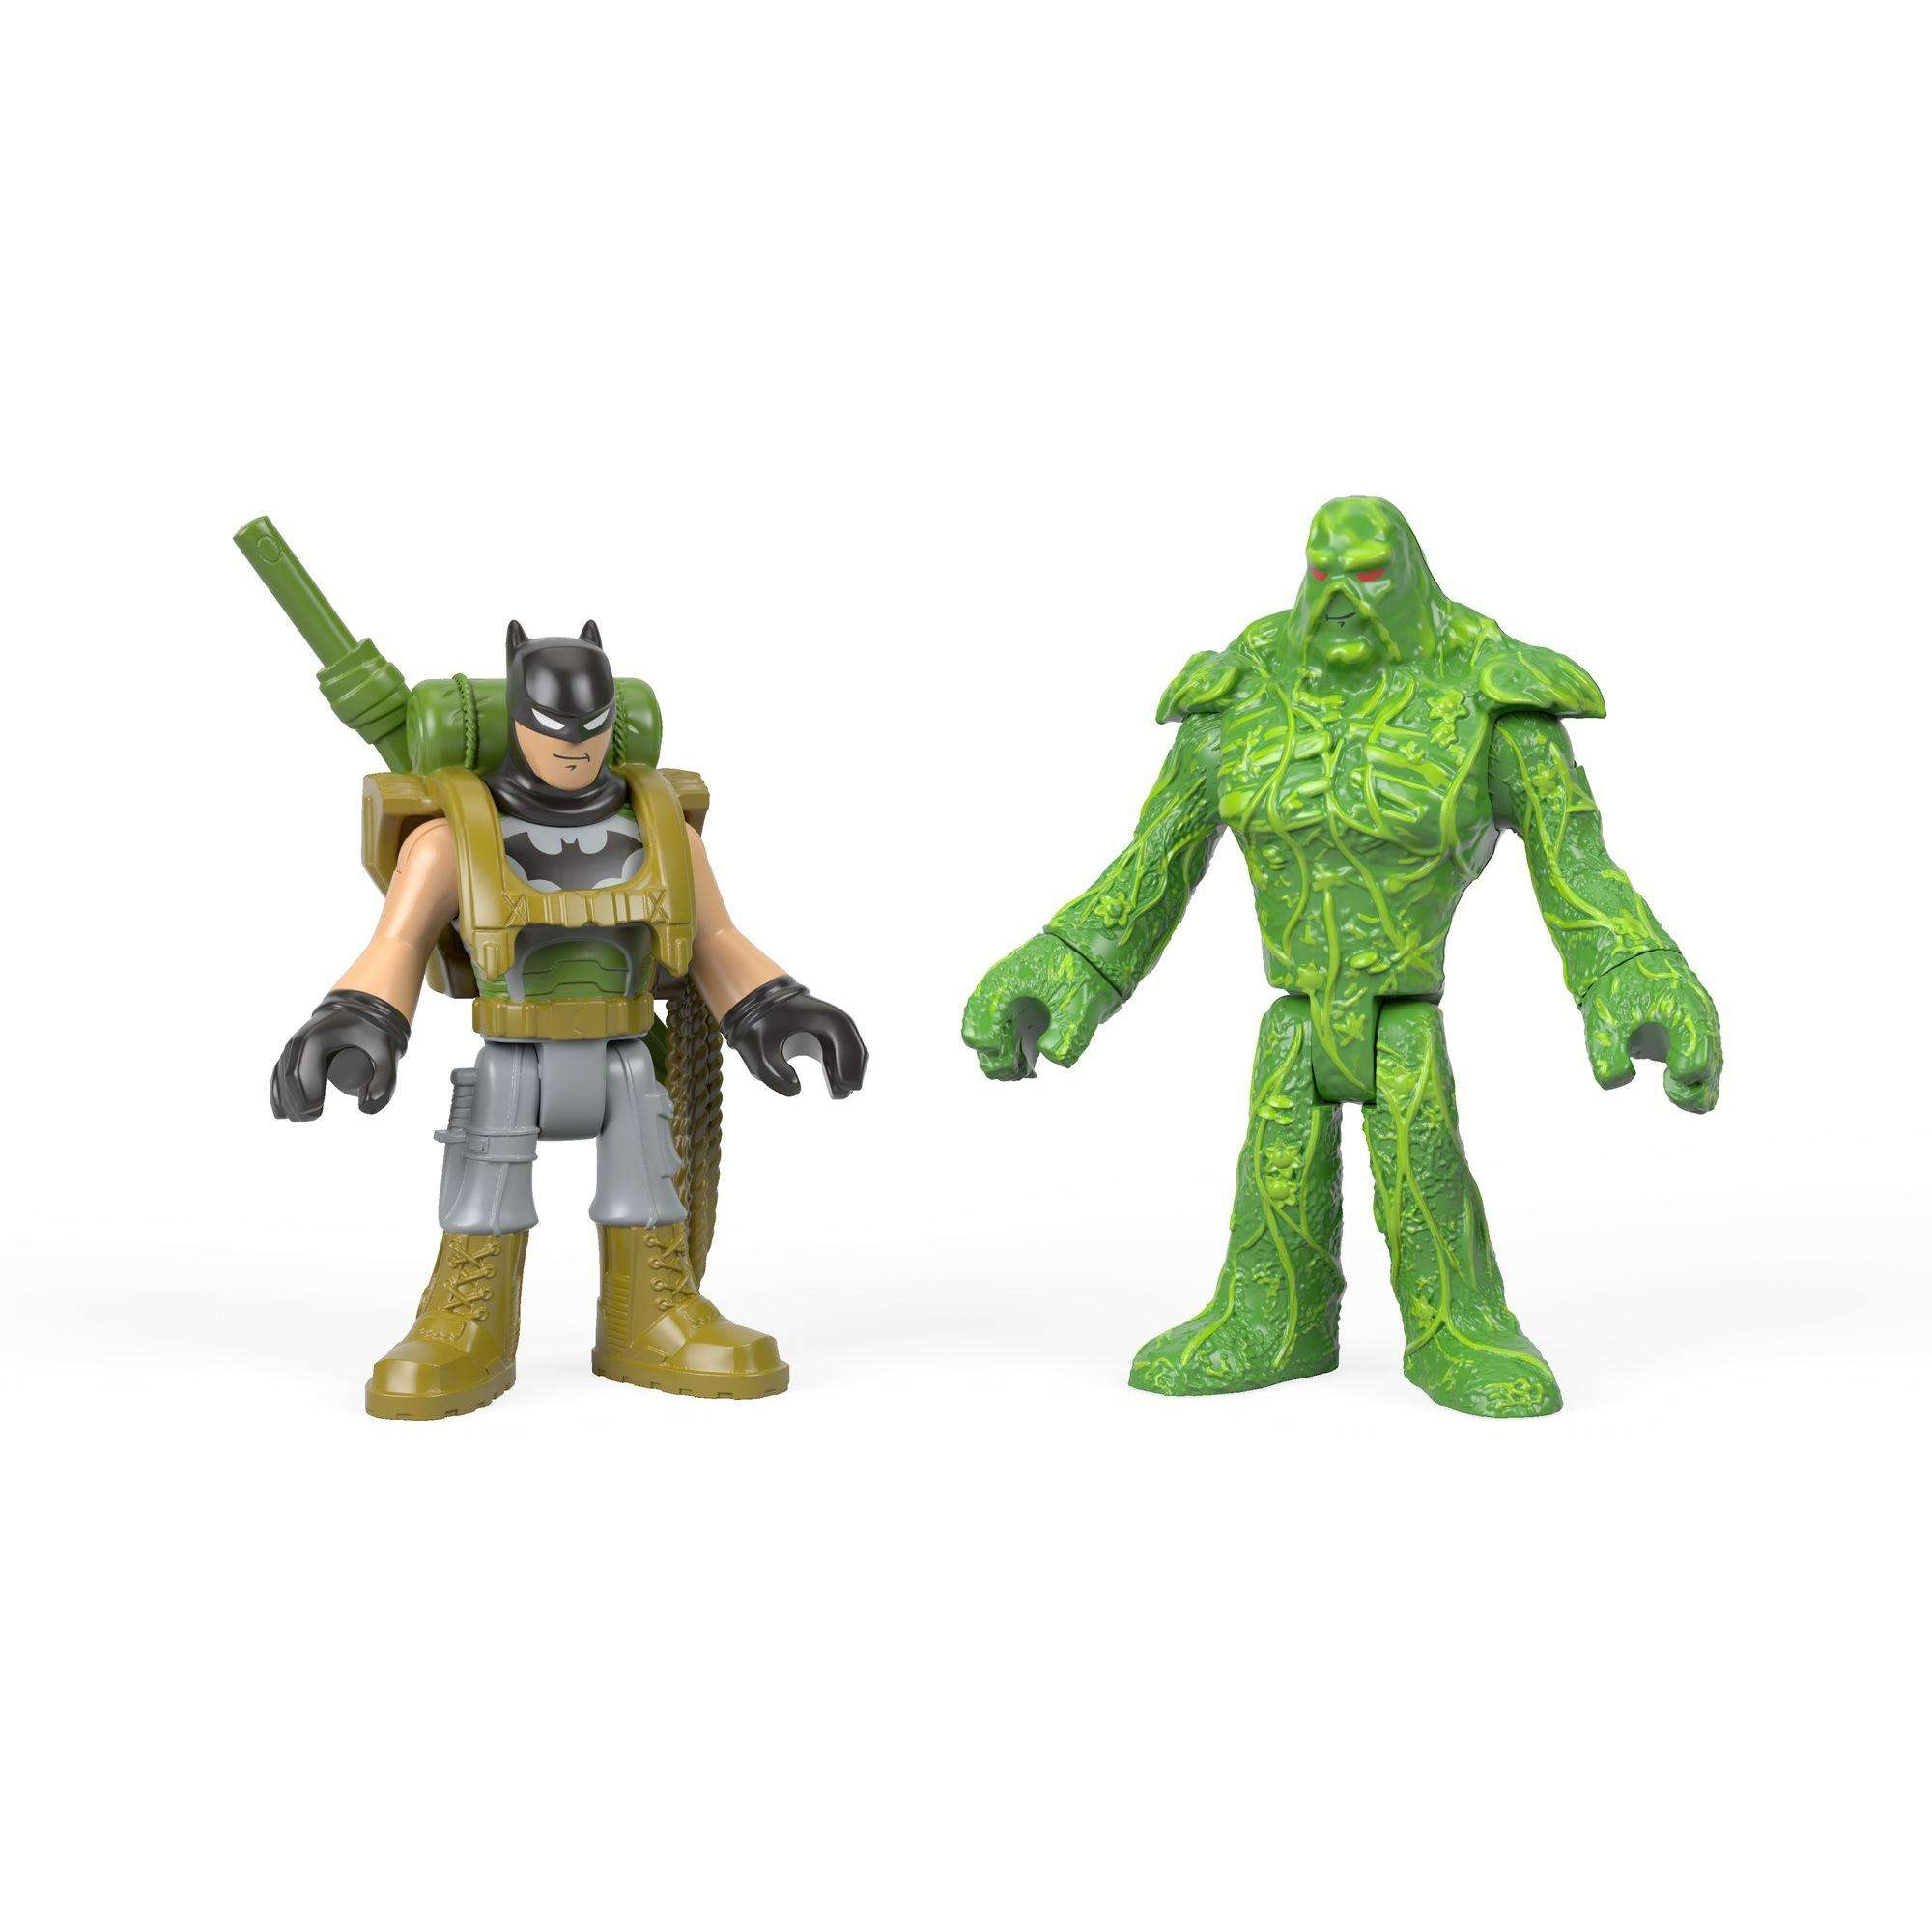 IMaginext DC Super Friends Batman & Swamp Thing by FISHER PRICE